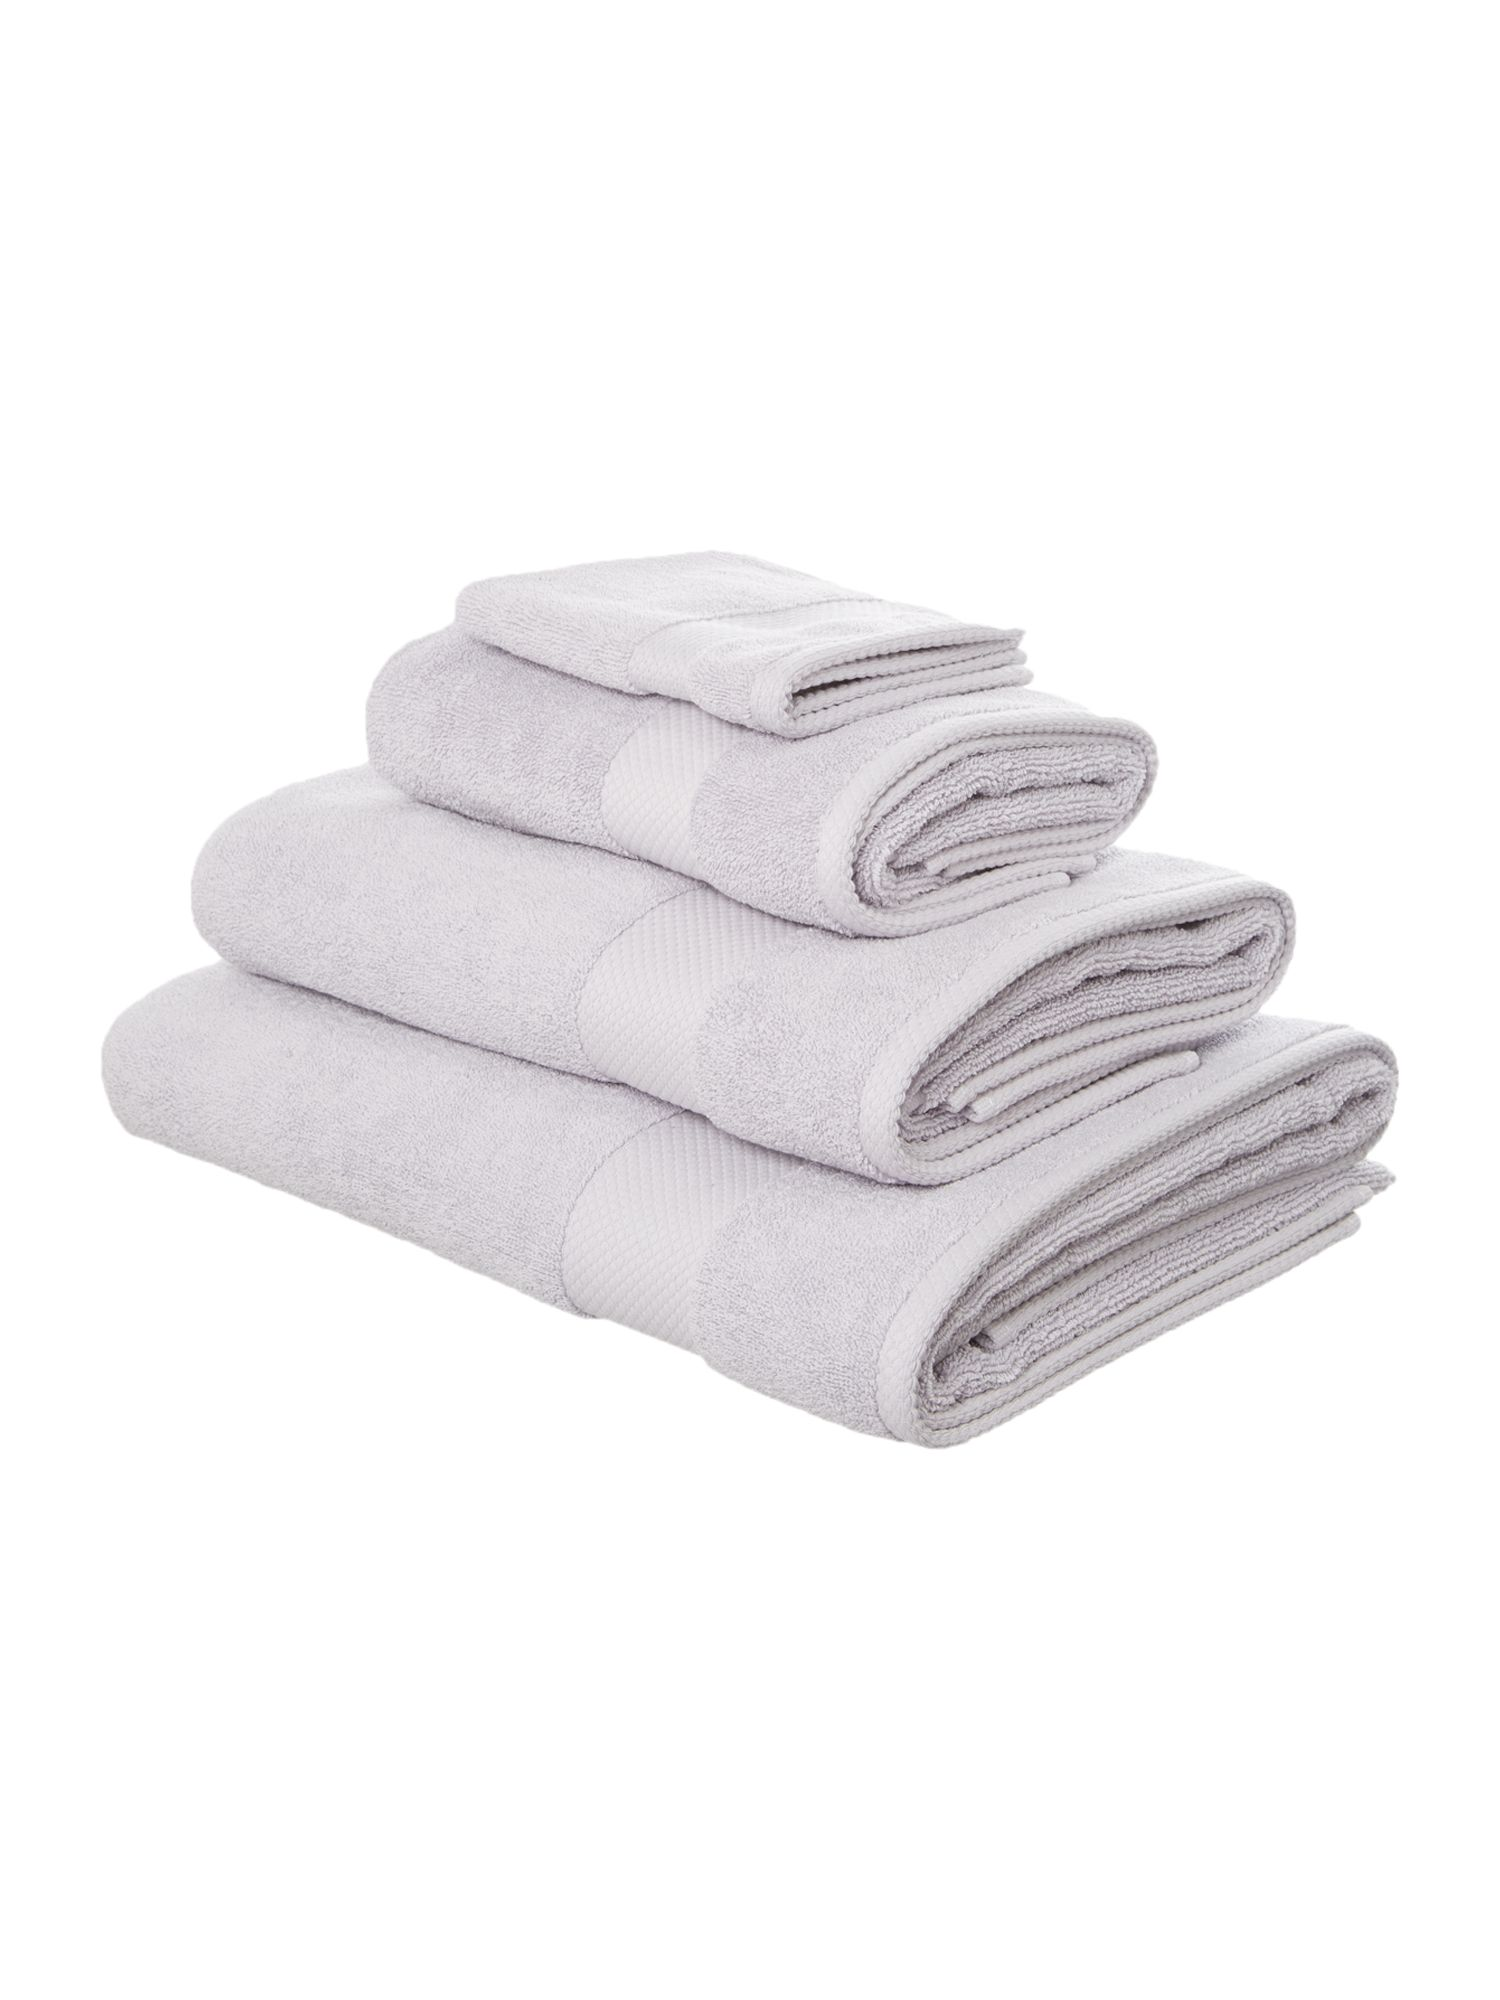 Egyptian cotton towels in heather